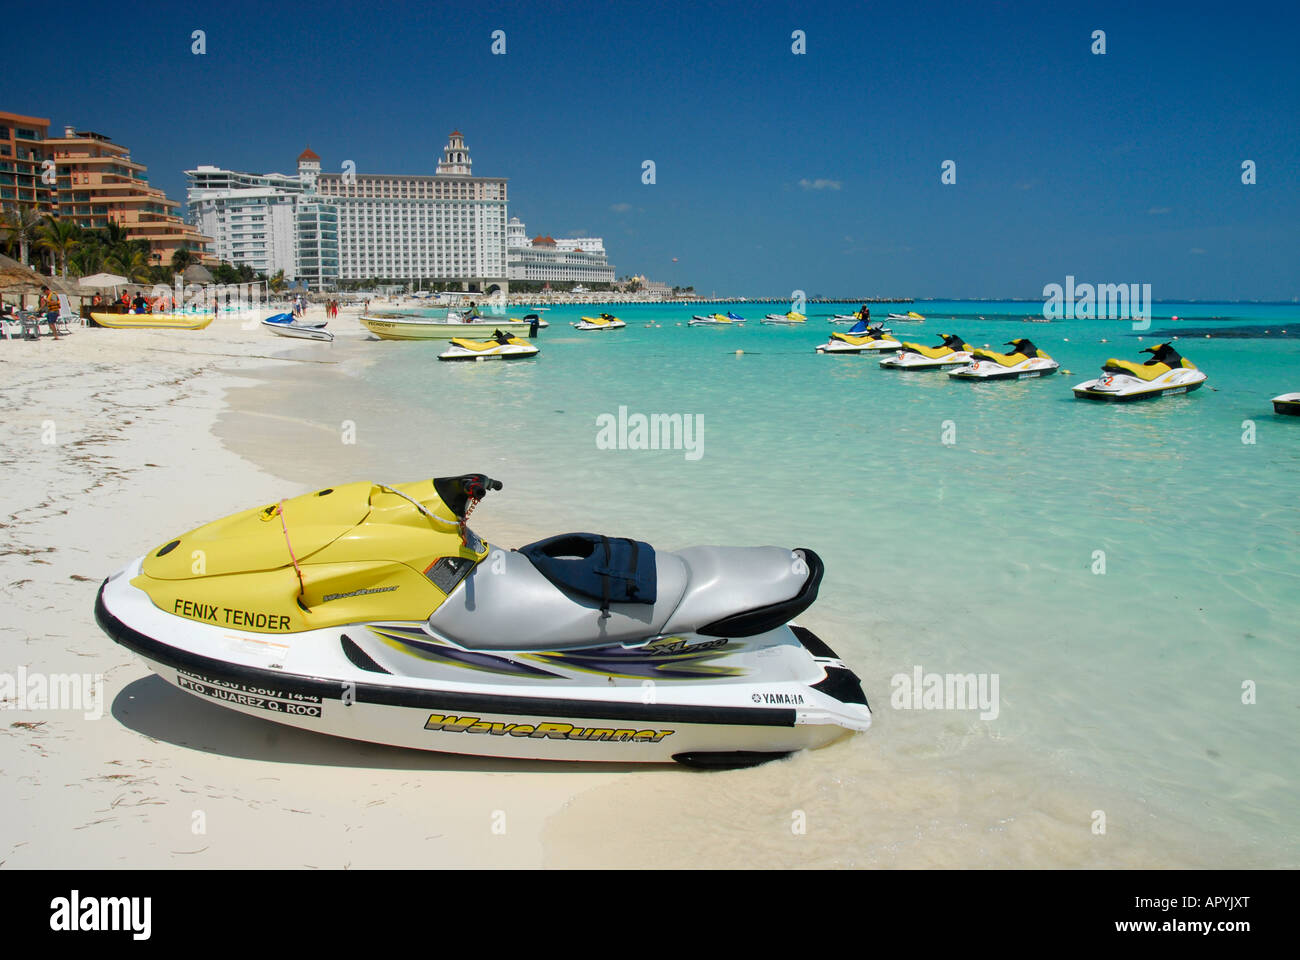 Sandy beach in Cancun hotel and resort area, Quintana Roo State, Mexico, North America Stock Photo